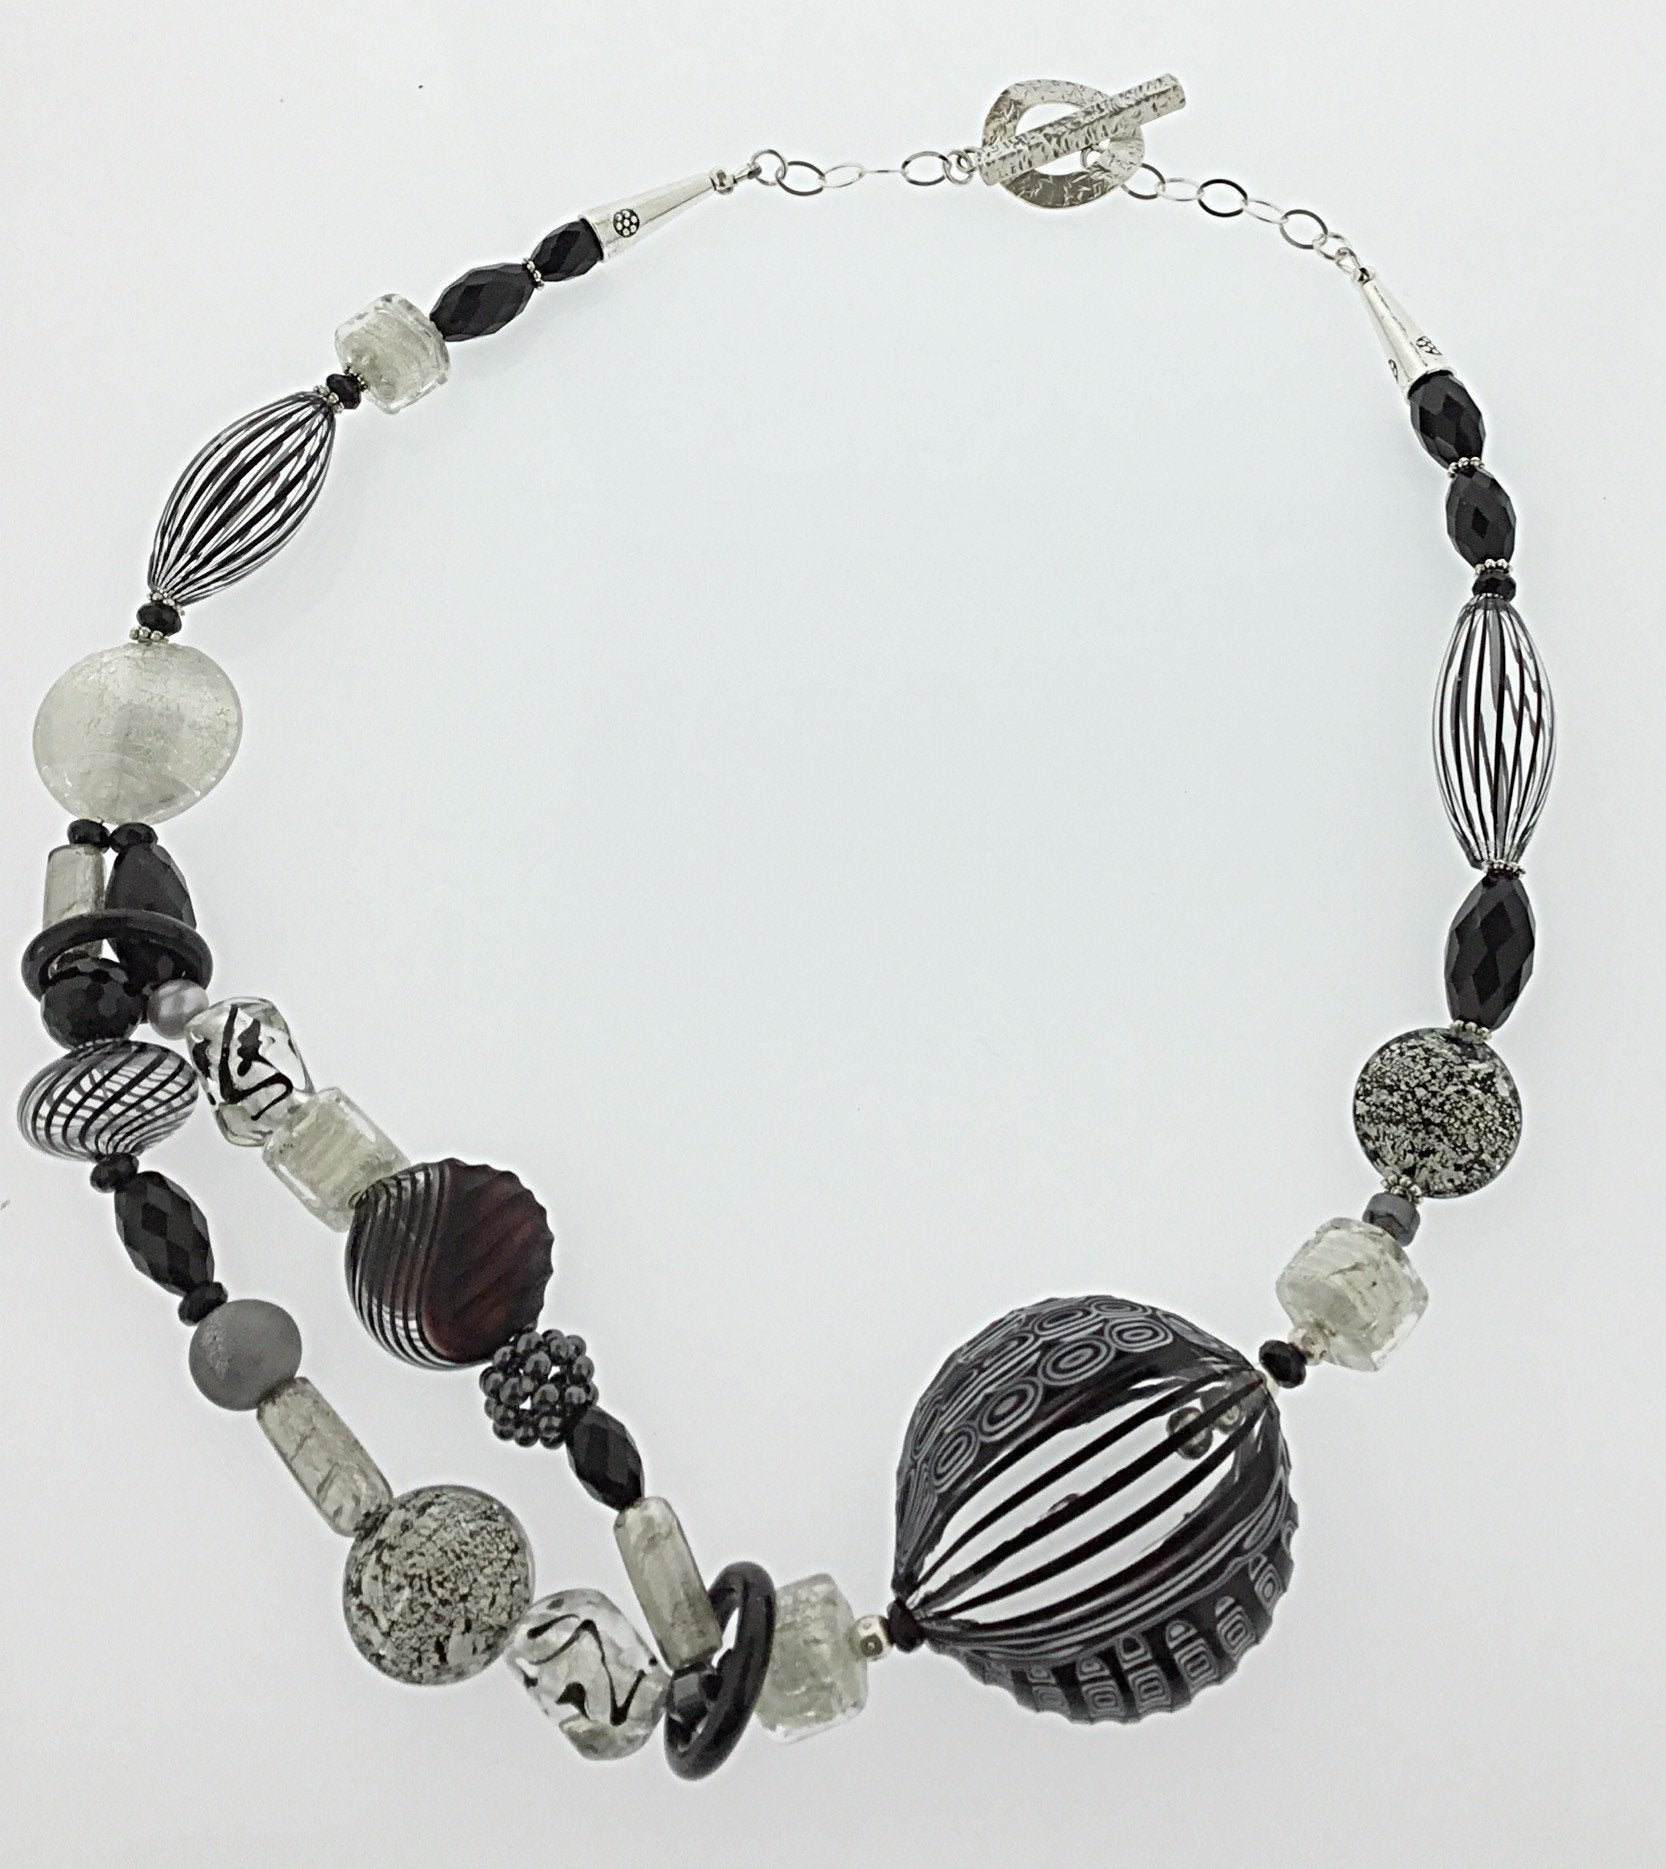 Murano Glass Necklace Black and White Stripes - Real Chic Boutique  - 3